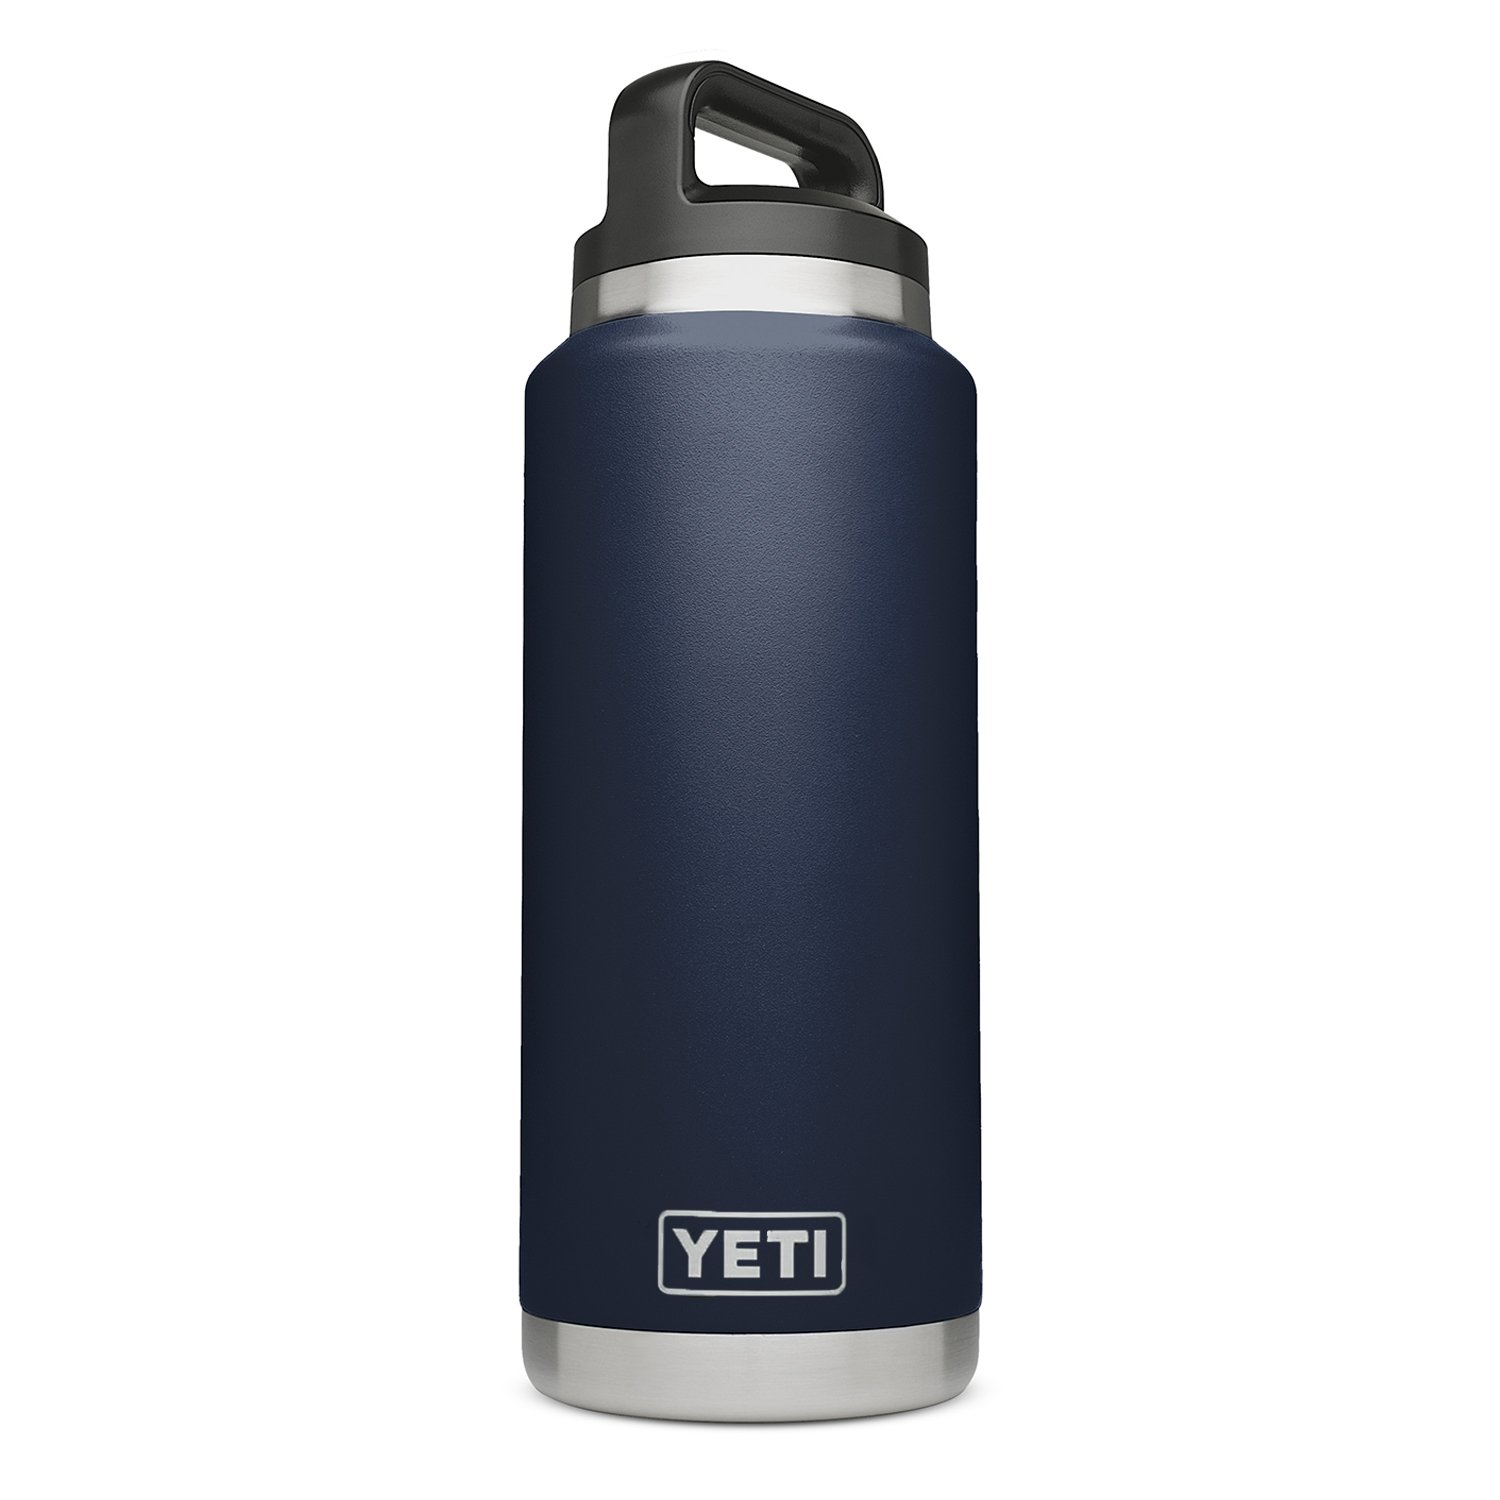 YETI Rambler 36 oz Stainless Steel Vacuum Insulated Bottle with Cap, Navy by YETI